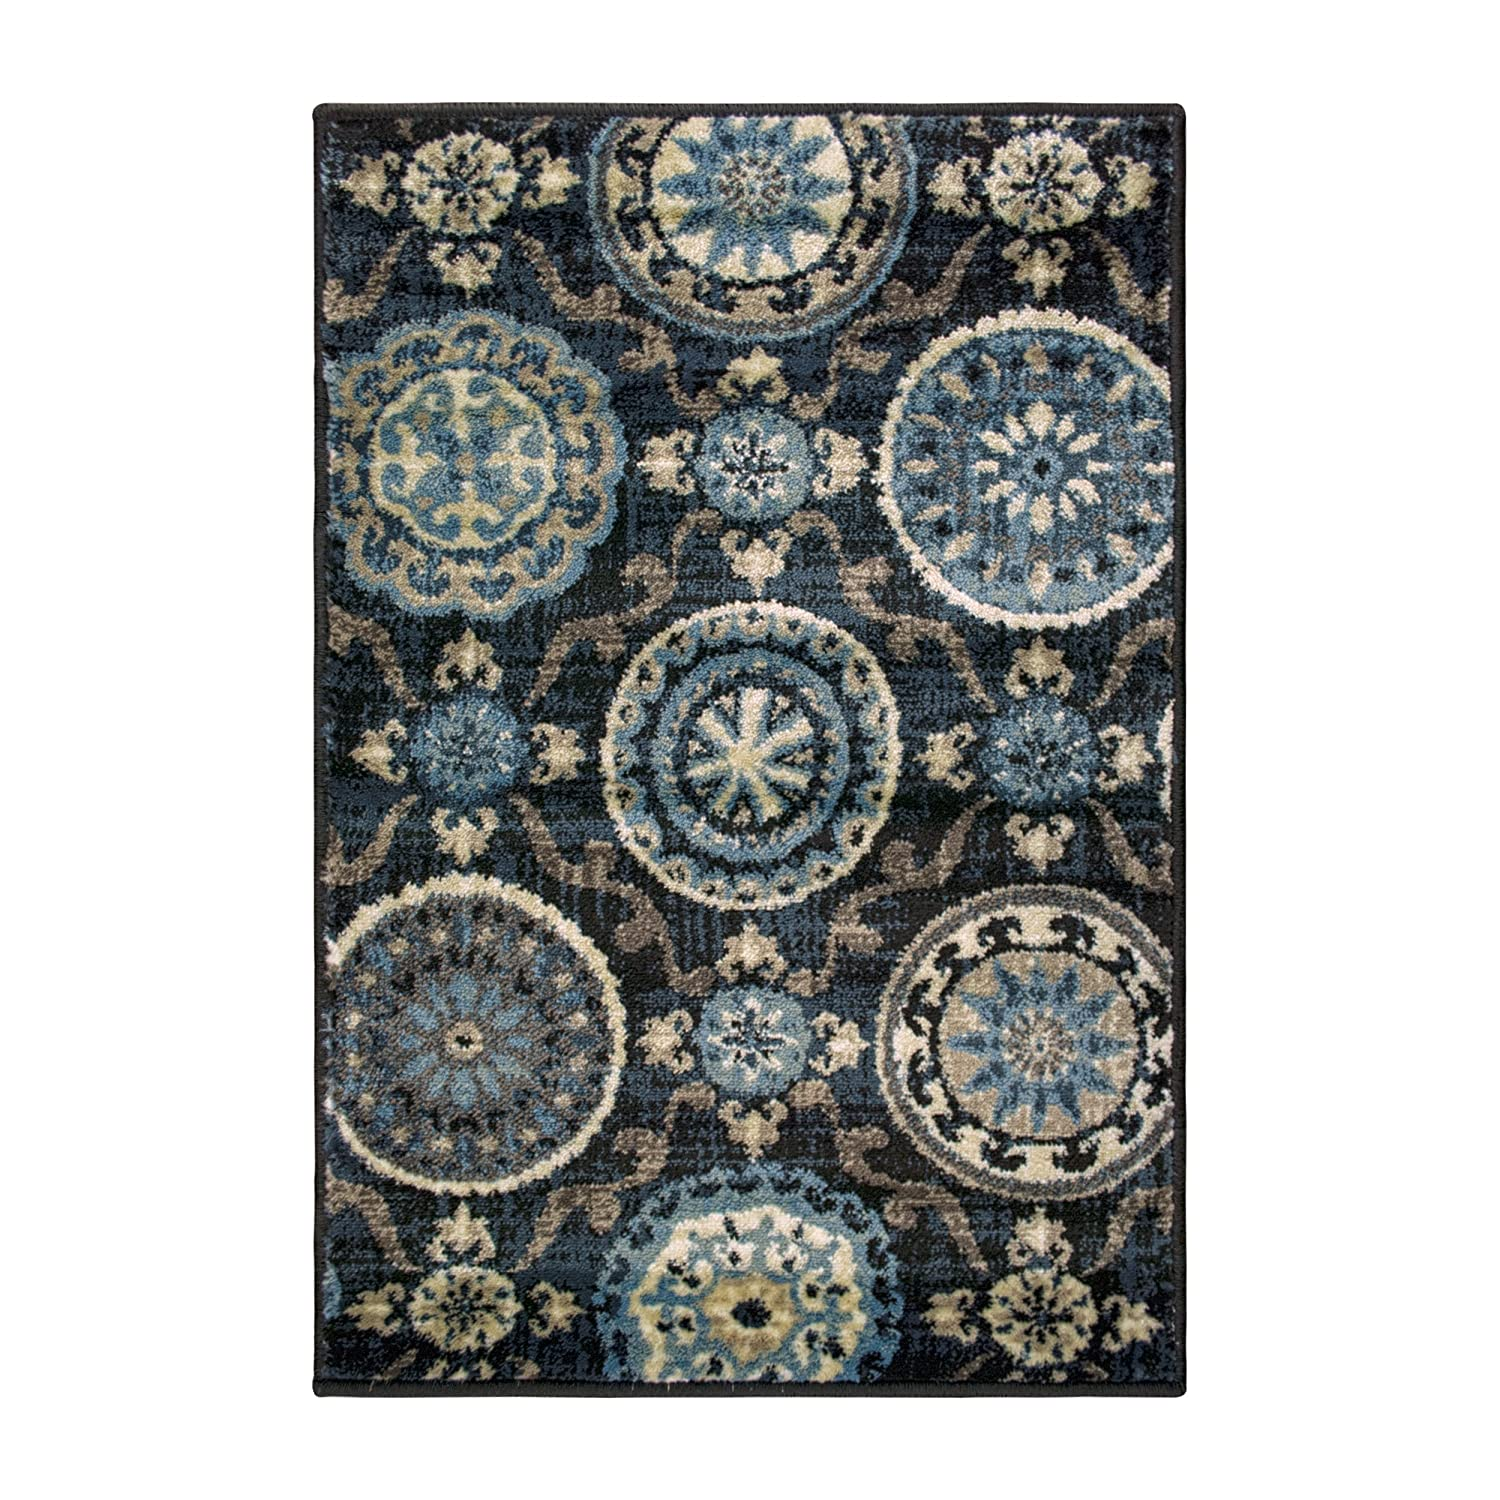 27 x 8 Runner Cream with Blue and Beige Beautiful Scrolling Medallion Pattern 2/'7 x 8/' Runner 10mm Pile Height with Jute Backing Superior Abner Collection Area Rug Beautiful Scrolling Medallion Pattern Fashionable and Affordable Rugs